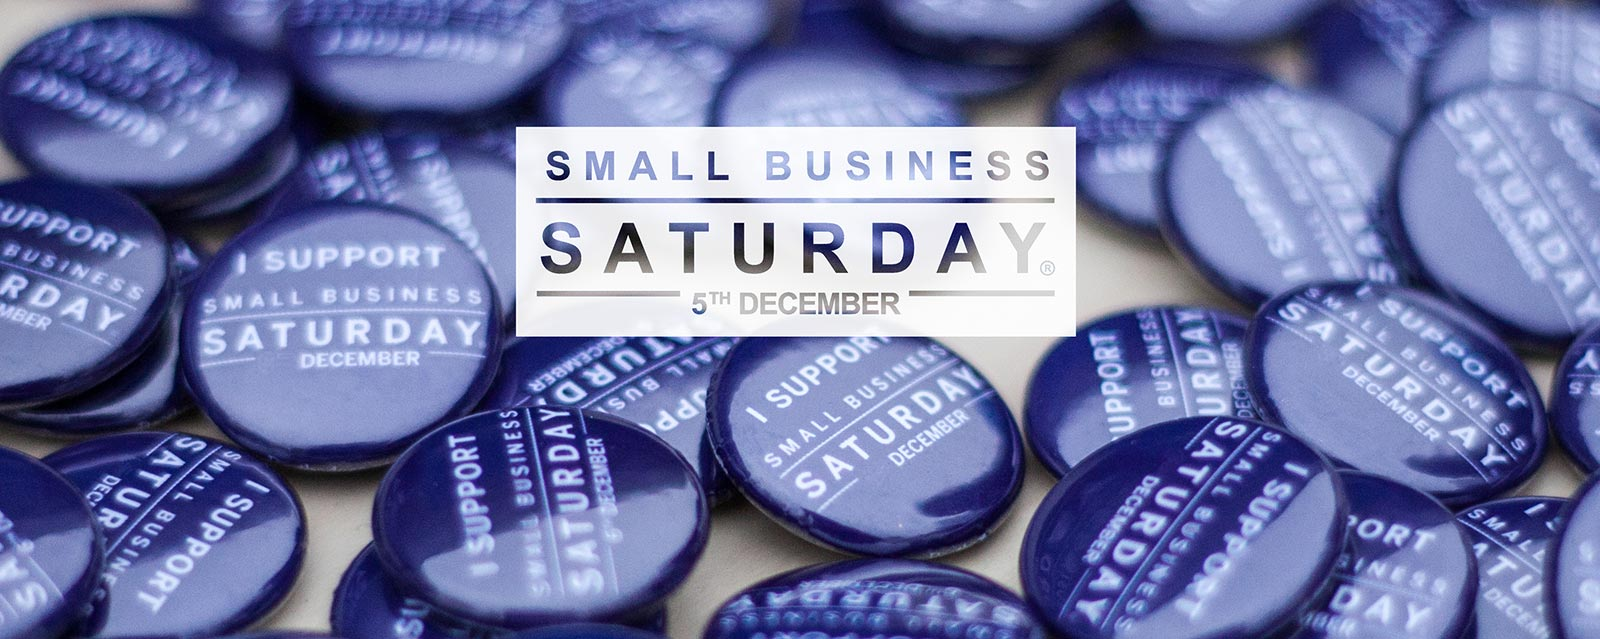 1600x639 Small Business Saturday Uk 2015 Woking Shopping Centre